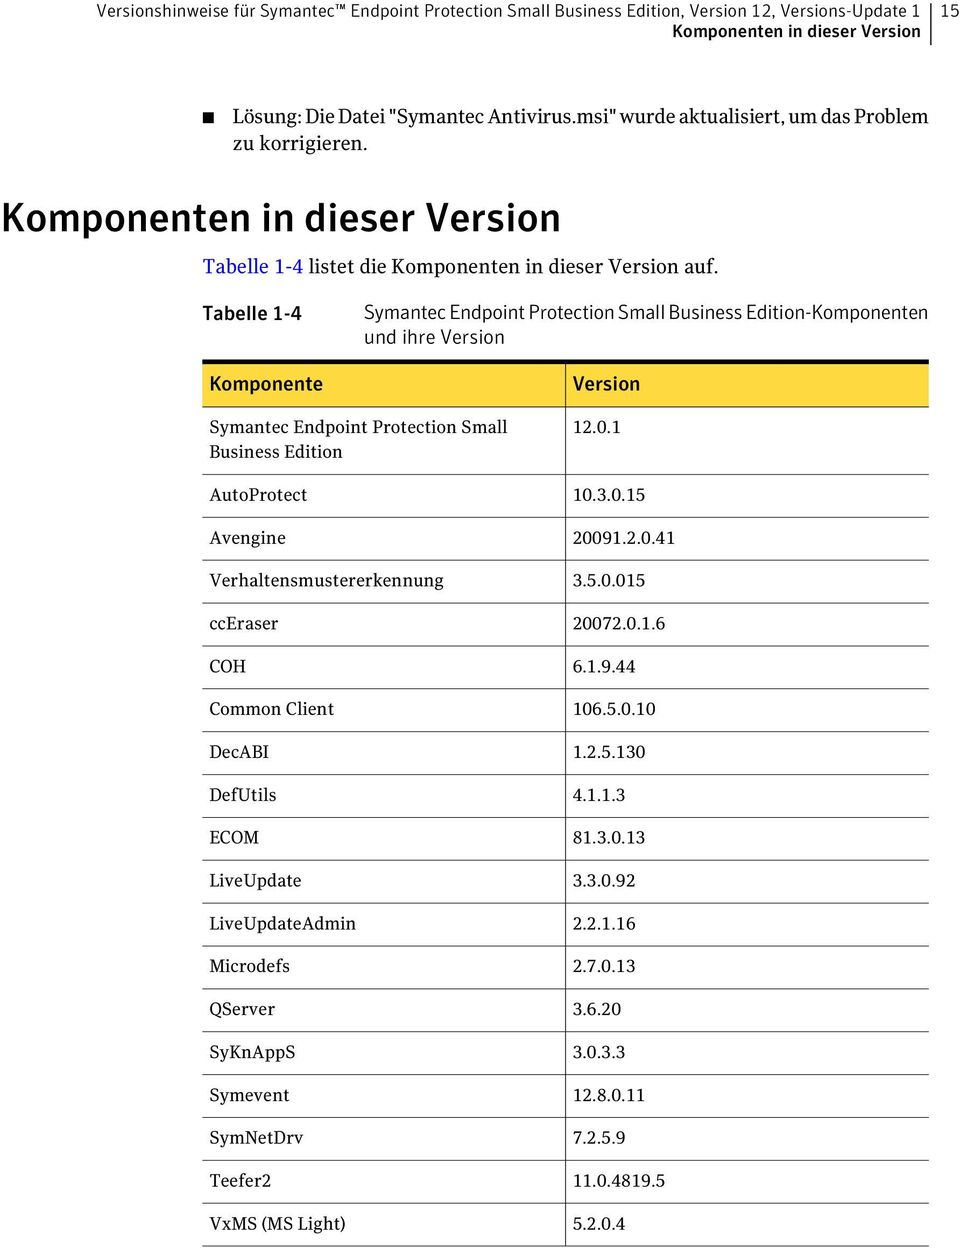 Tabelle 1-4 Komponente Symantec Endpoint Protection Small Business Edition-Komponenten und ihre Version Version Symantec Endpoint Protection Small Business Edition AutoProtect Avengine